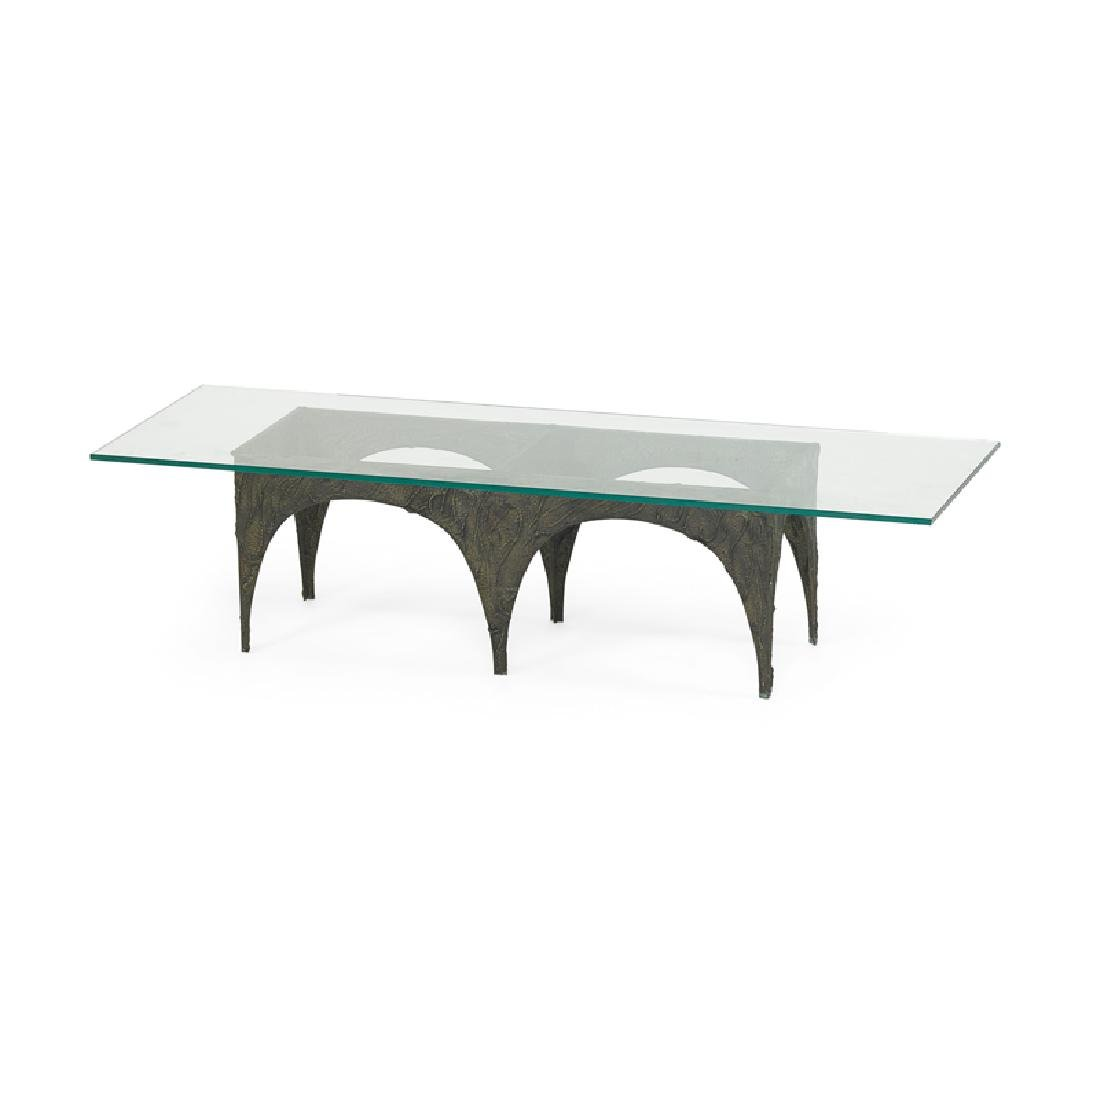 PAUL EVANS Sculptured Metal coffee table - 2